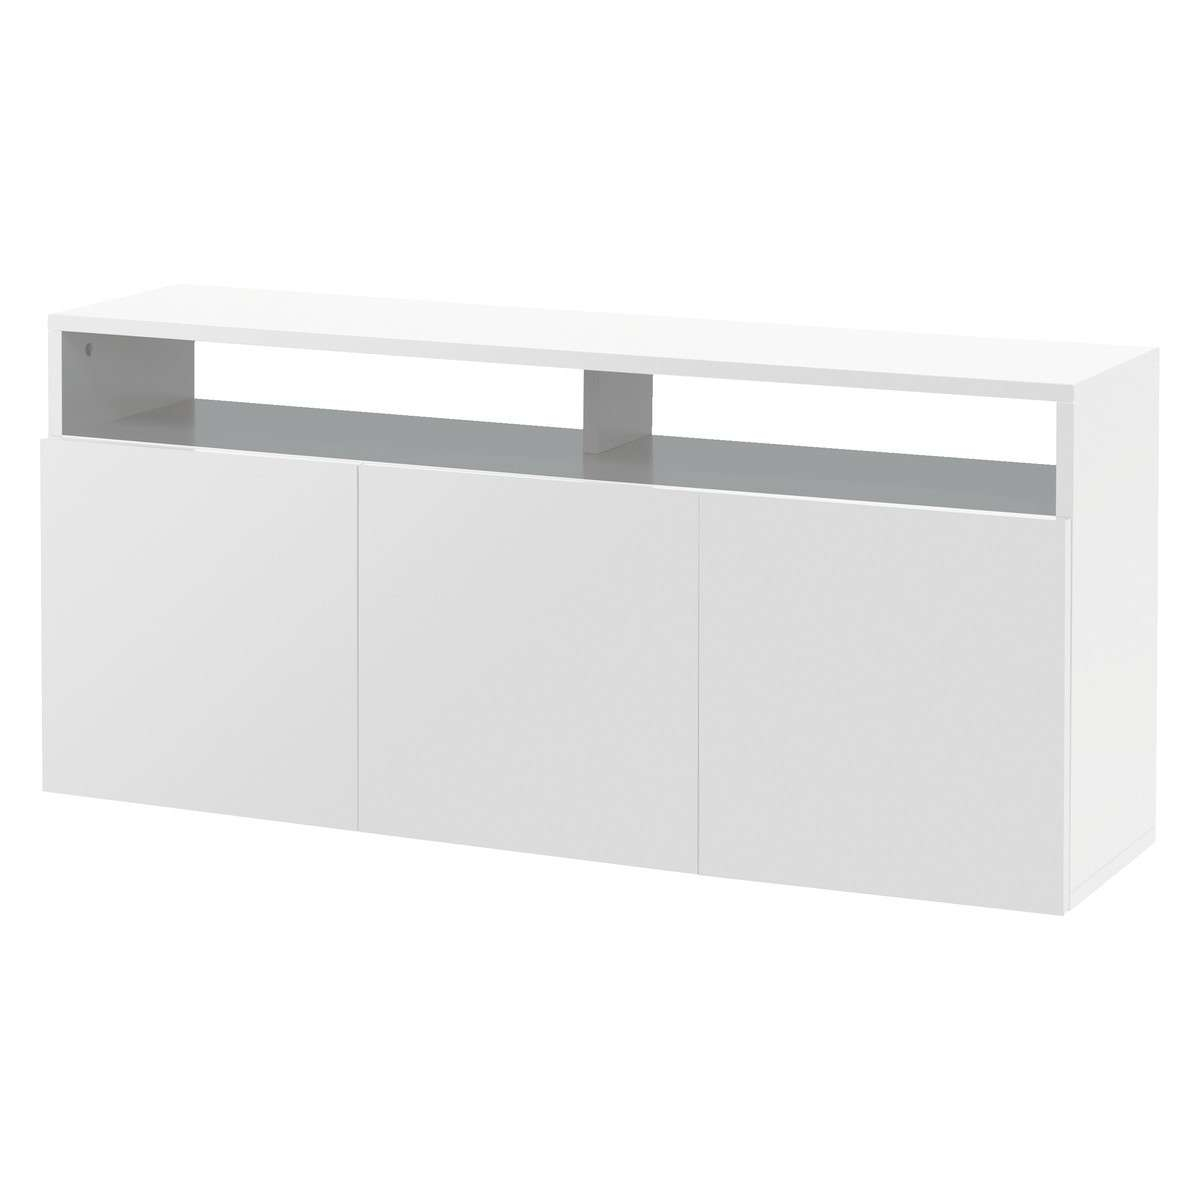 Kubrik White High Gloss Large Sideboard | Buy Now At Habitat Uk For Large White Sideboards (View 9 of 20)